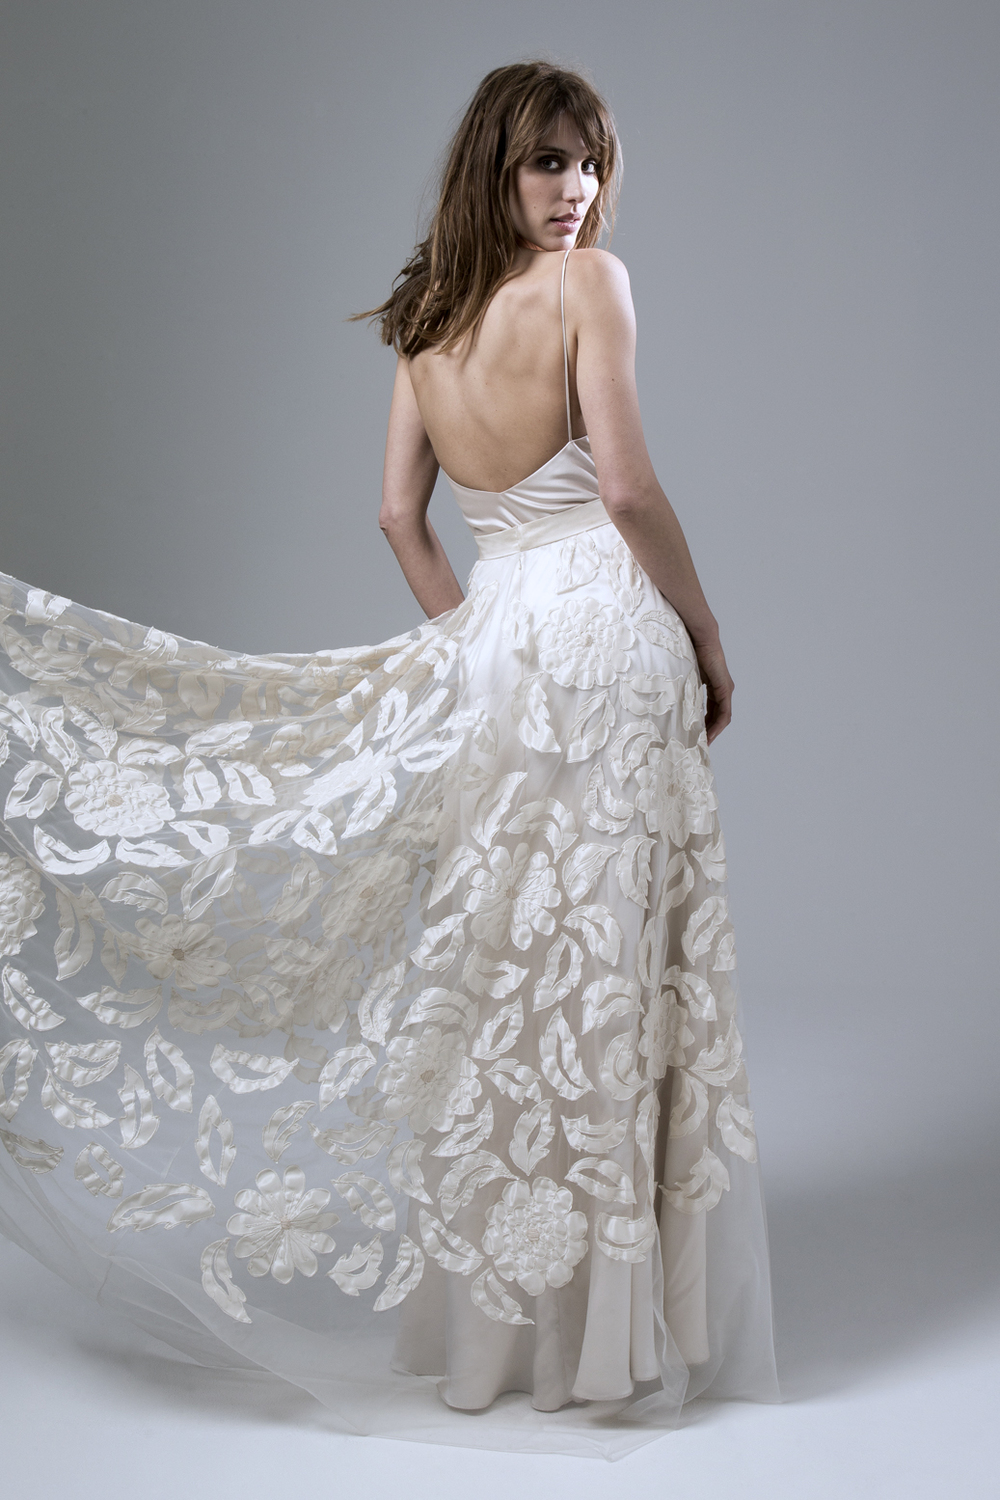 SUSIE HAND APPLIQUES TULLE SKIRT WITH IRIS BACKLESS BIAS CUT SLIP WEDDING DRESS BY HALFPENNY LONDON